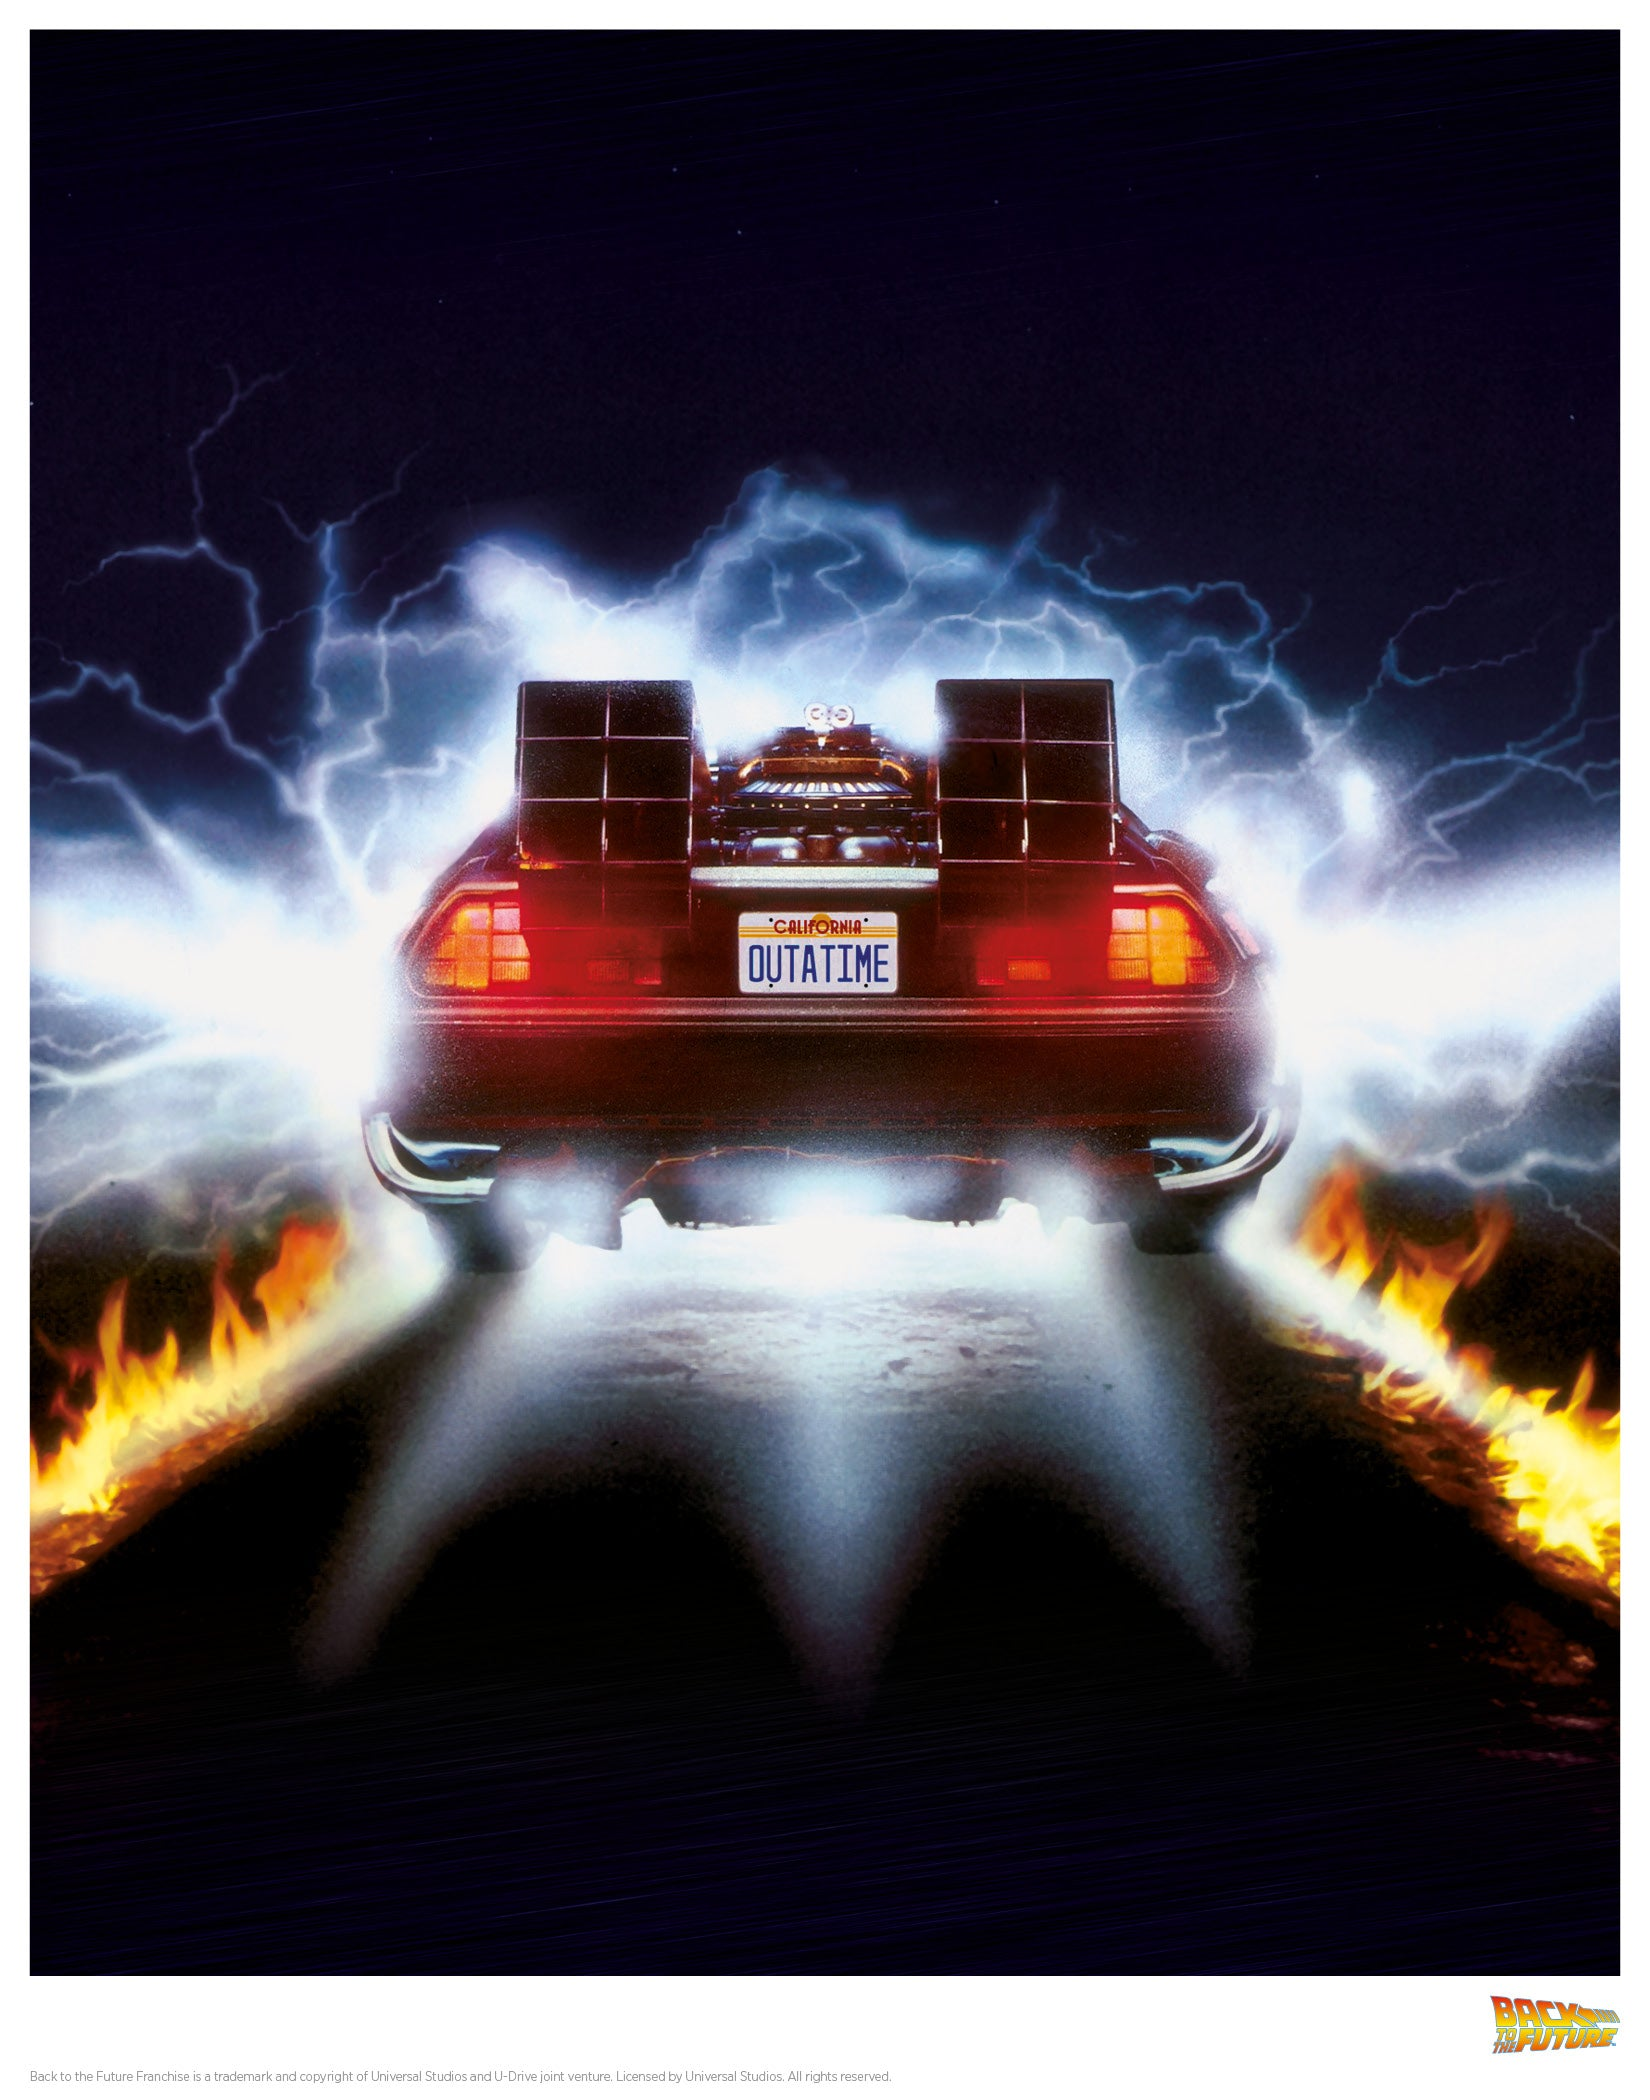 Back to the Future Flames print